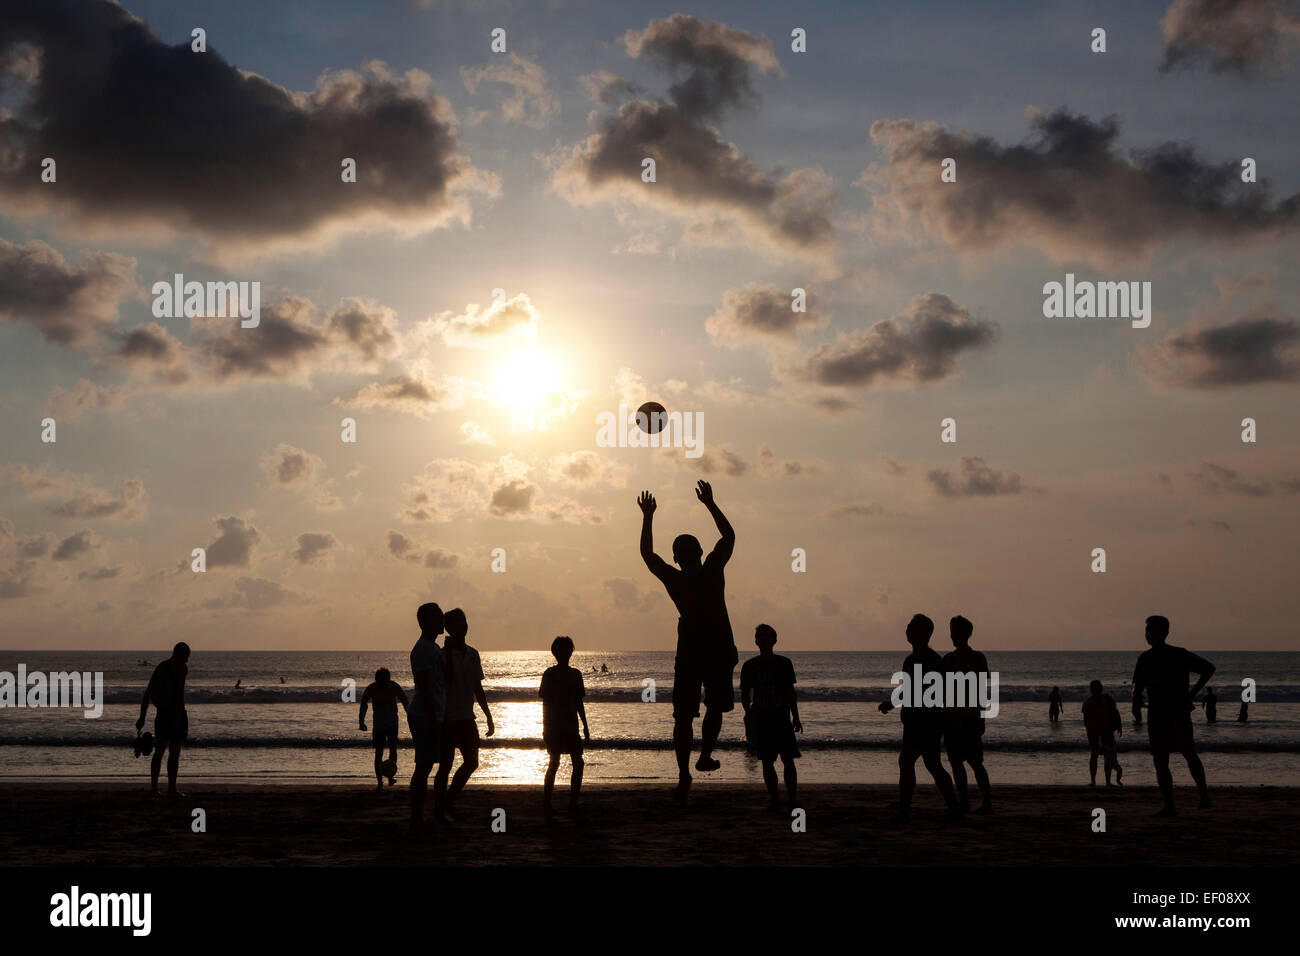 Young local boys playing football on a beach in Bali, Indonsesia Stock Photo